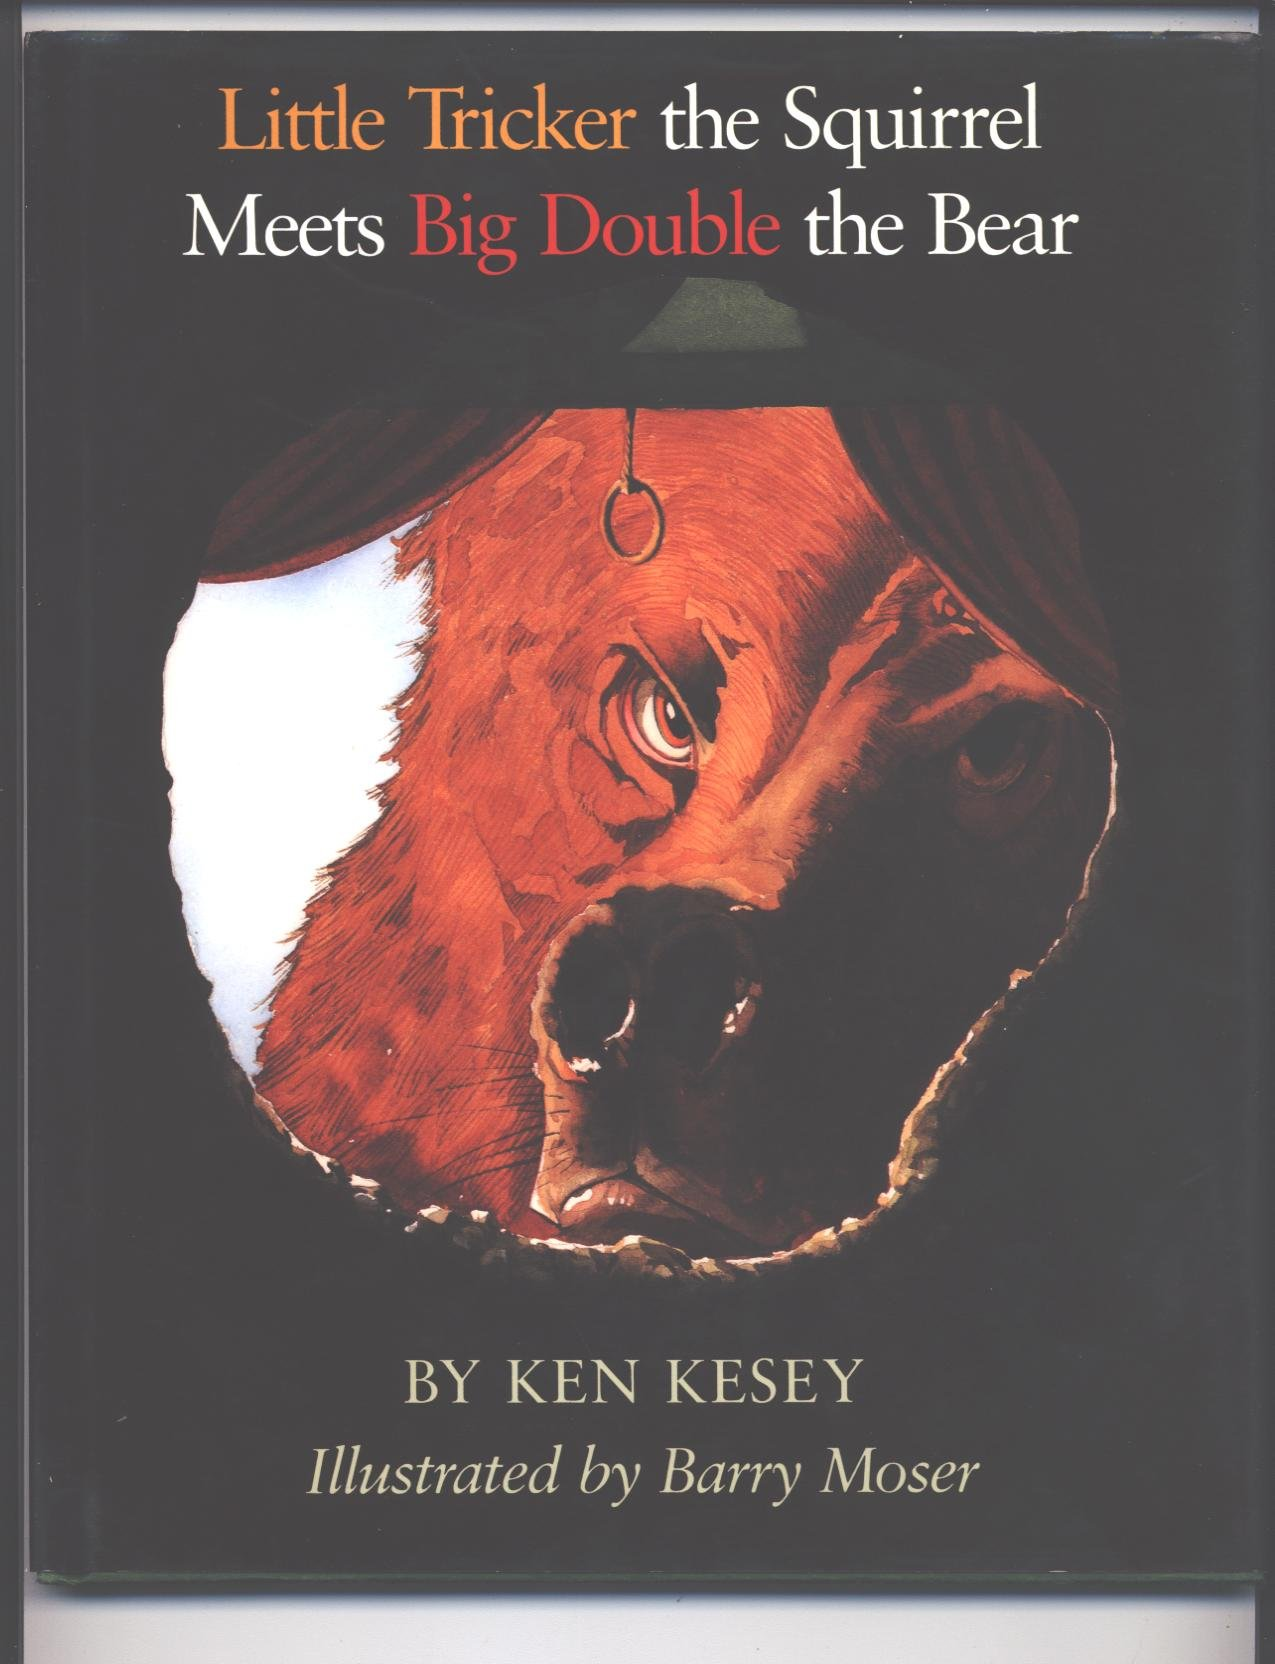 Little Tricker the Squirrel Meets Big Double the Bear